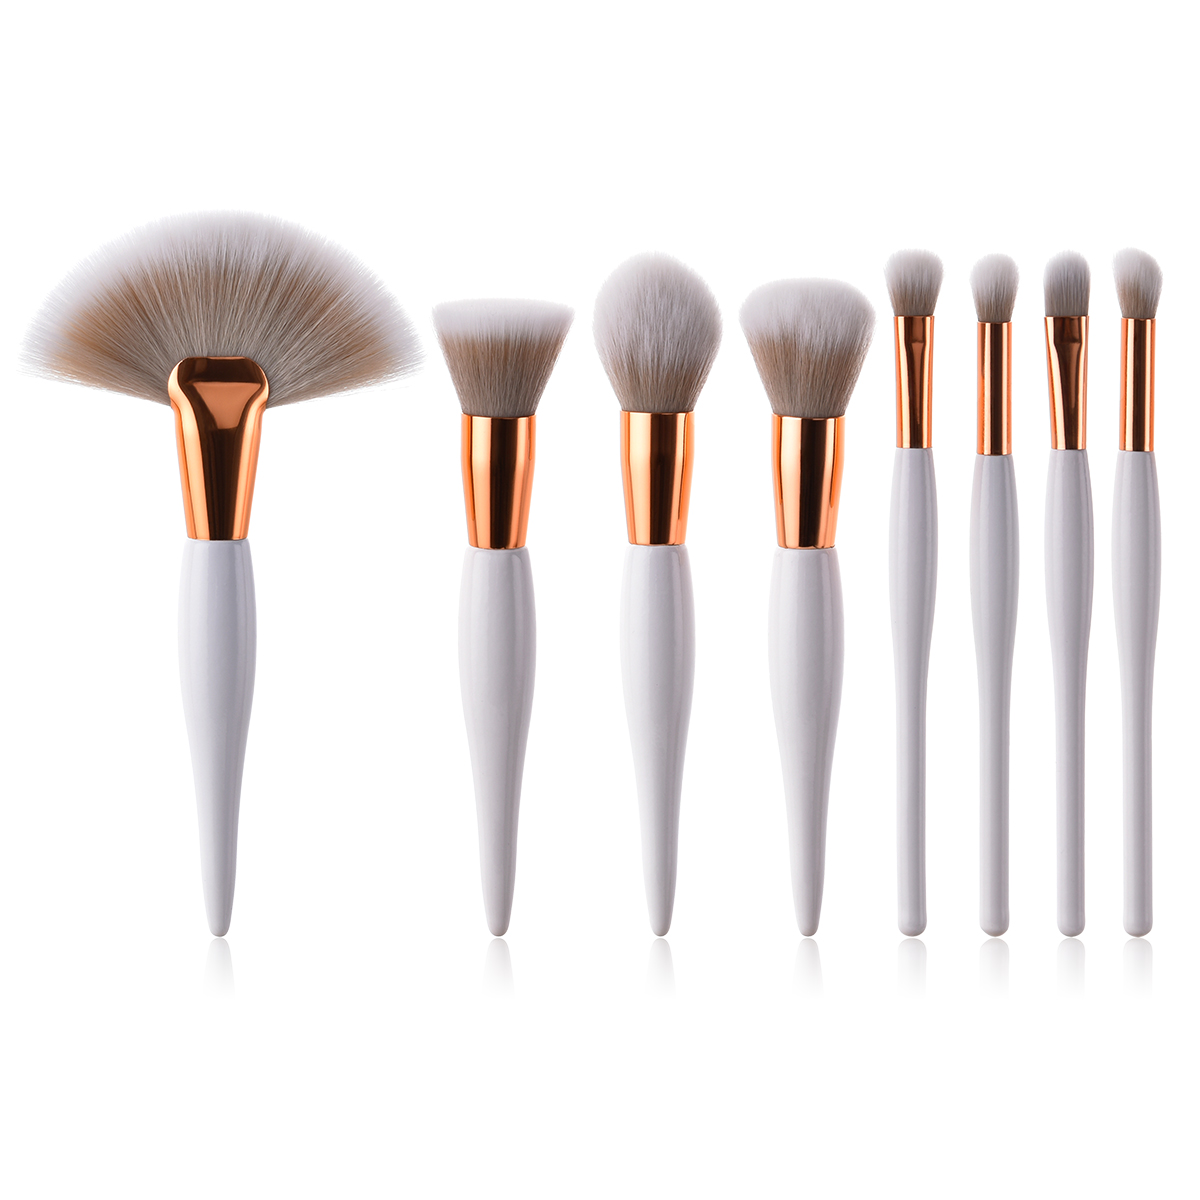 New Arrival Brushes 10-Piece Professional Makeup Brush Set